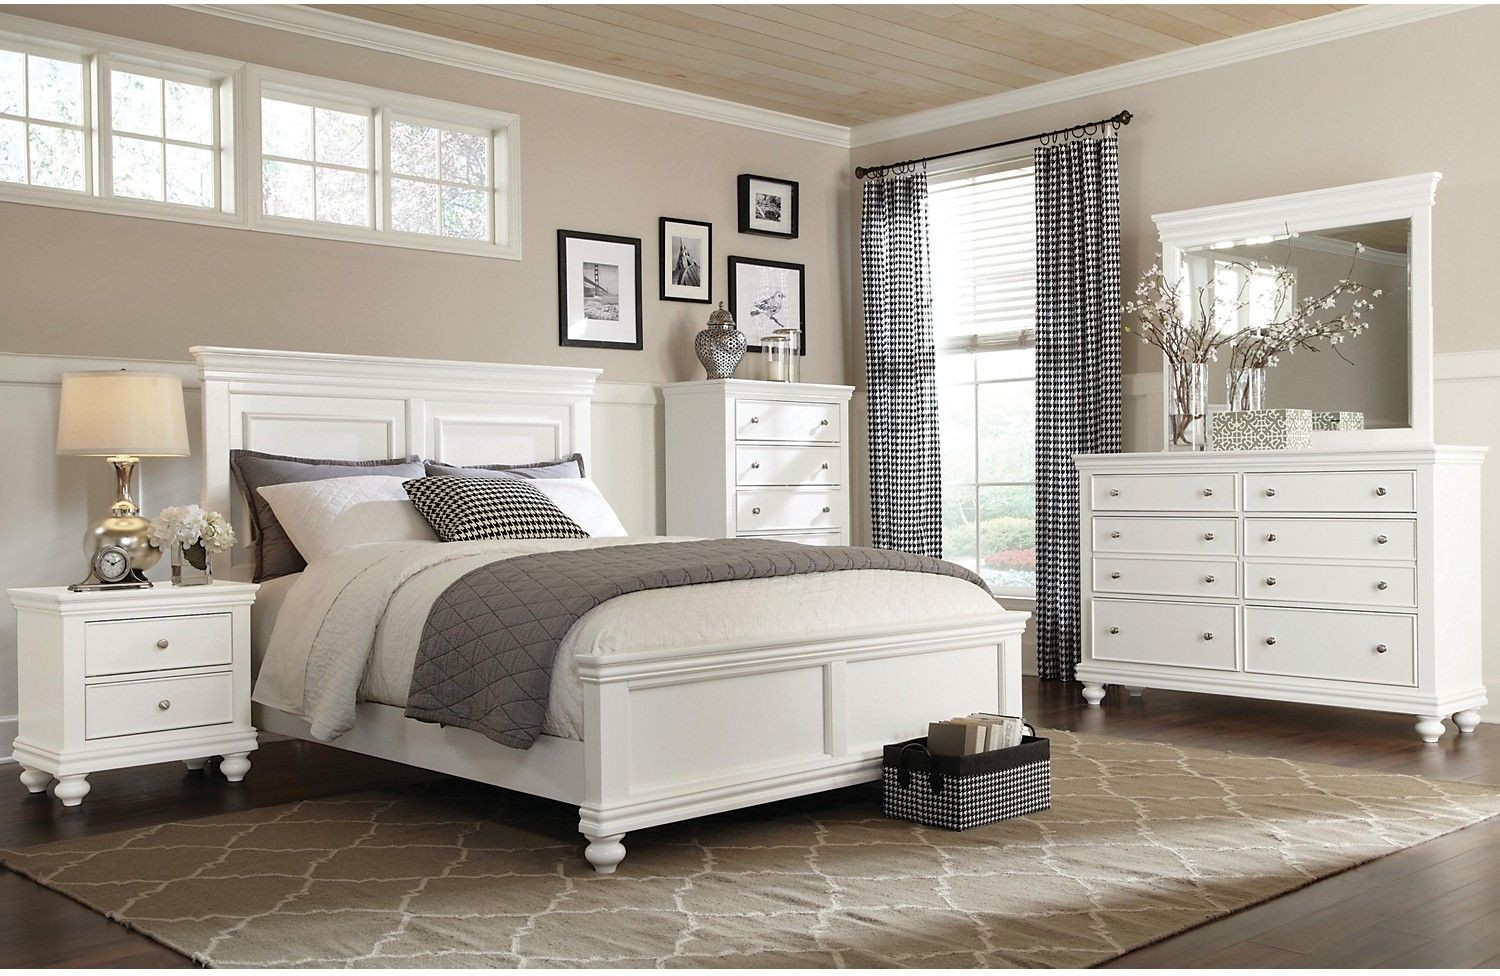 Best ideas about White Queen Bedroom Set . Save or Pin Bridgeport 6 Piece Queen Bedroom Set – White Now.